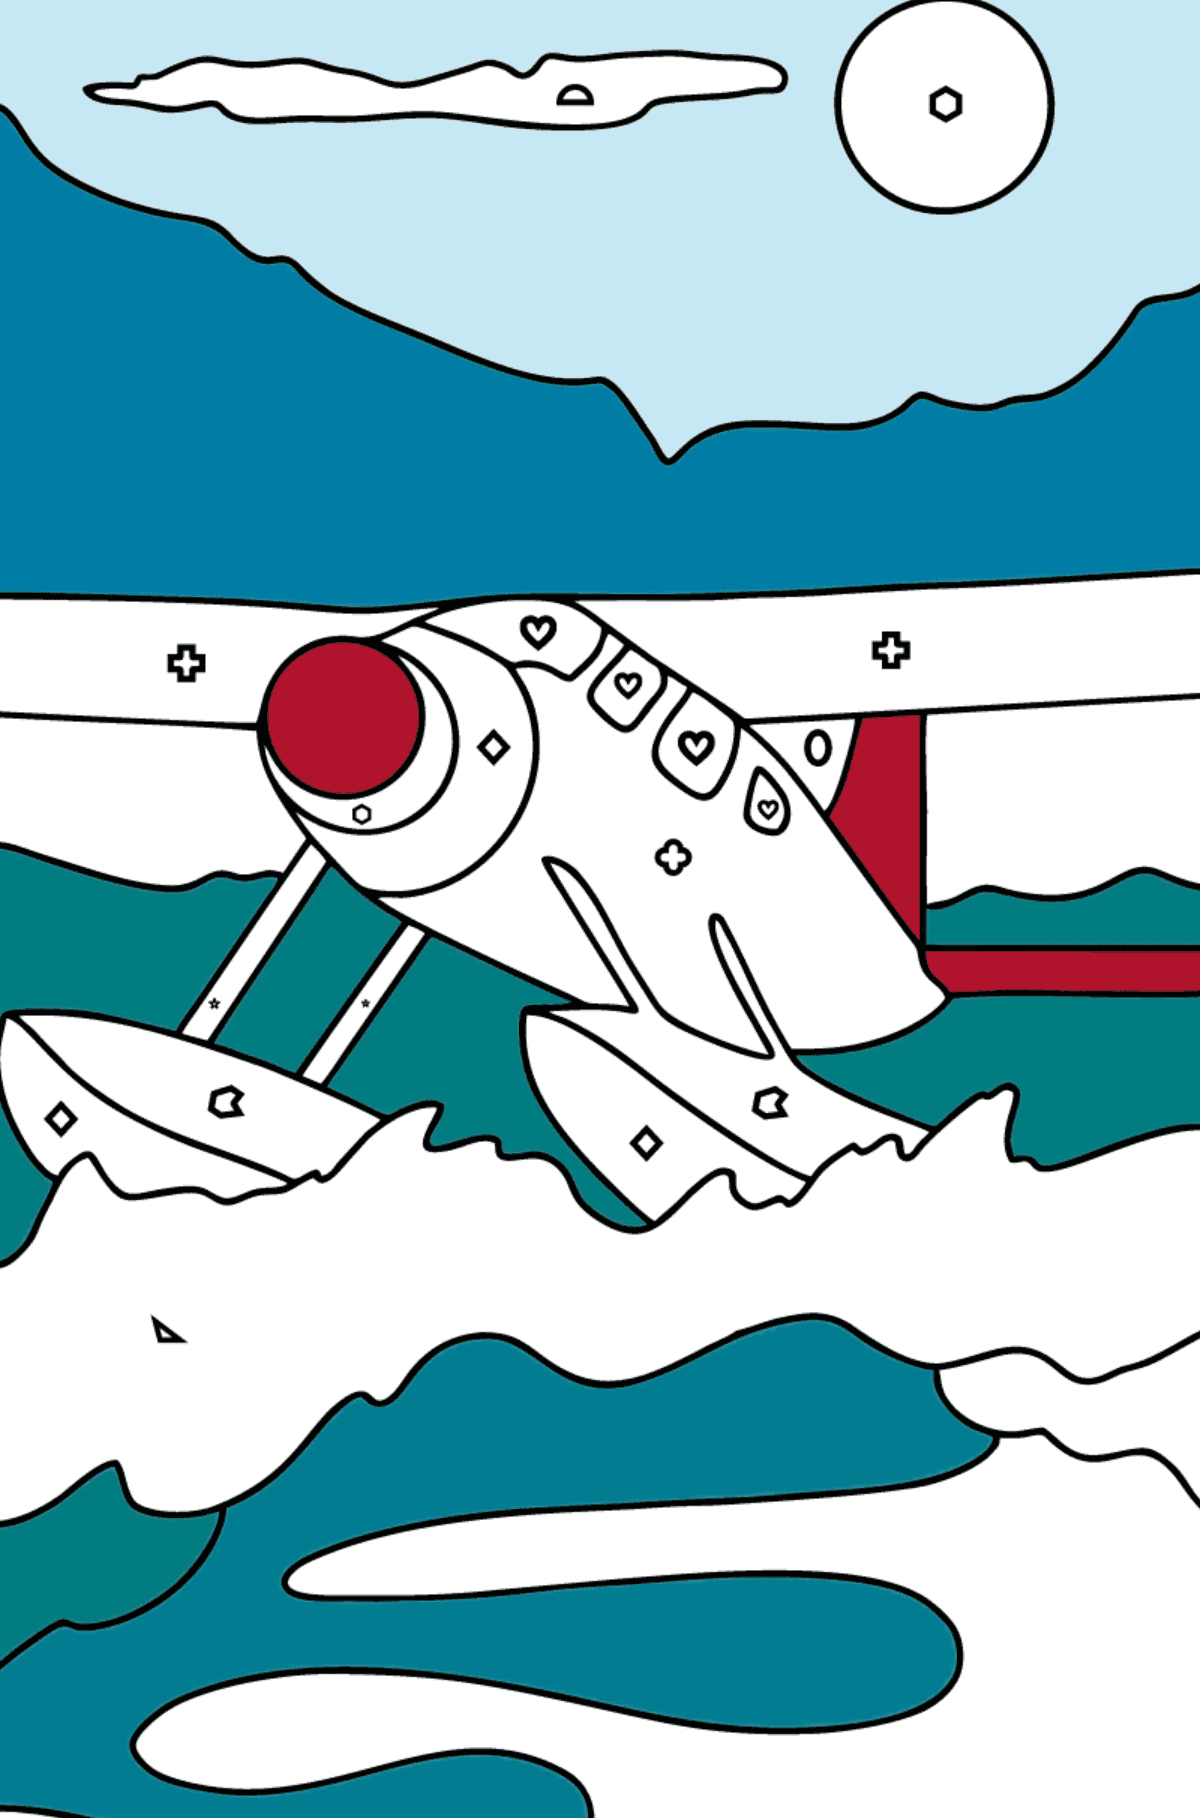 Coloring Page - A Hydroplane - Coloring by Geometric Shapes for Kids